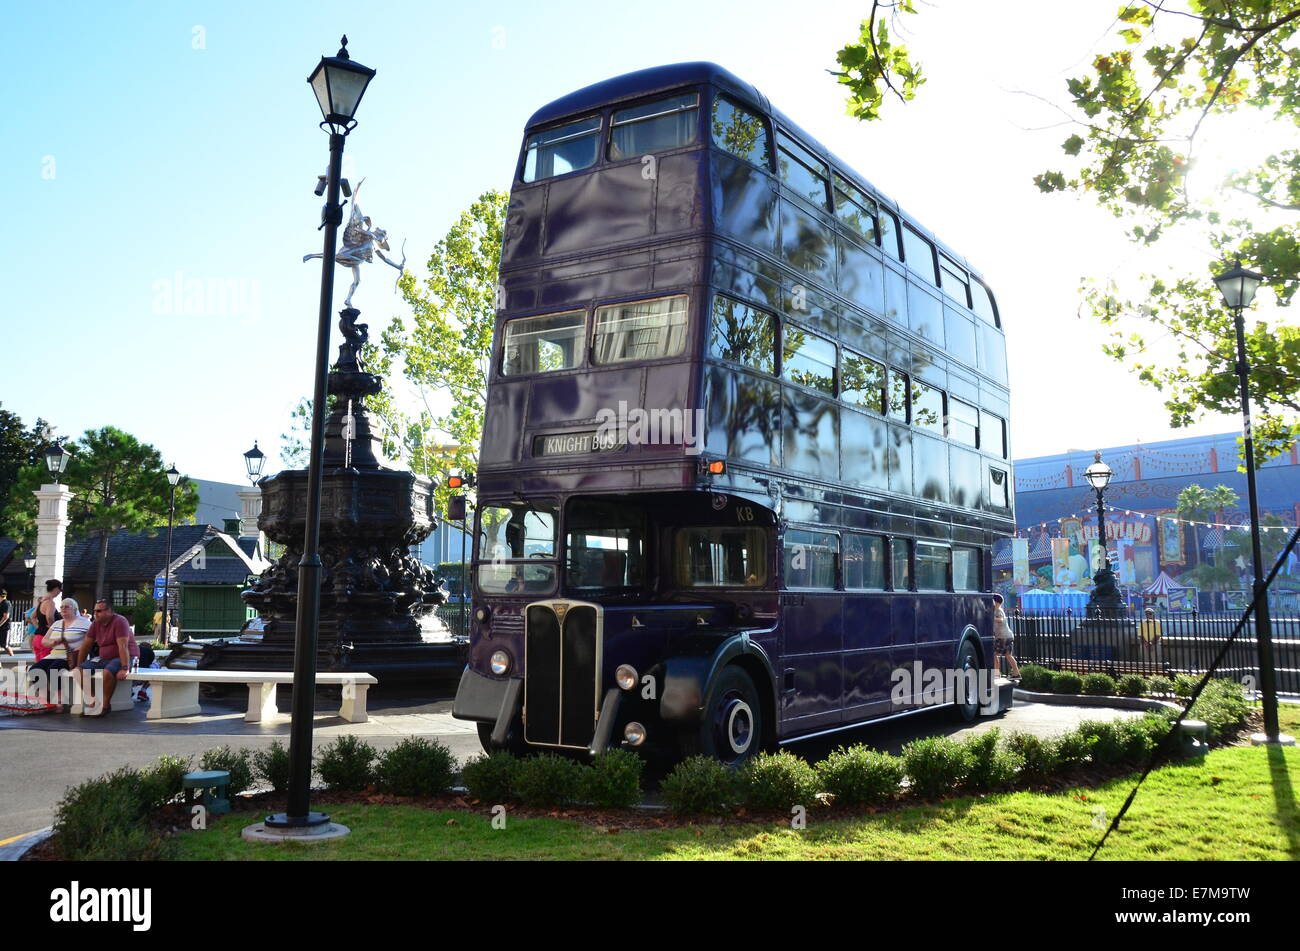 1103de333ef Knight Bus in Diagon Alley at the Wizarding World of Harry Potter  expansion